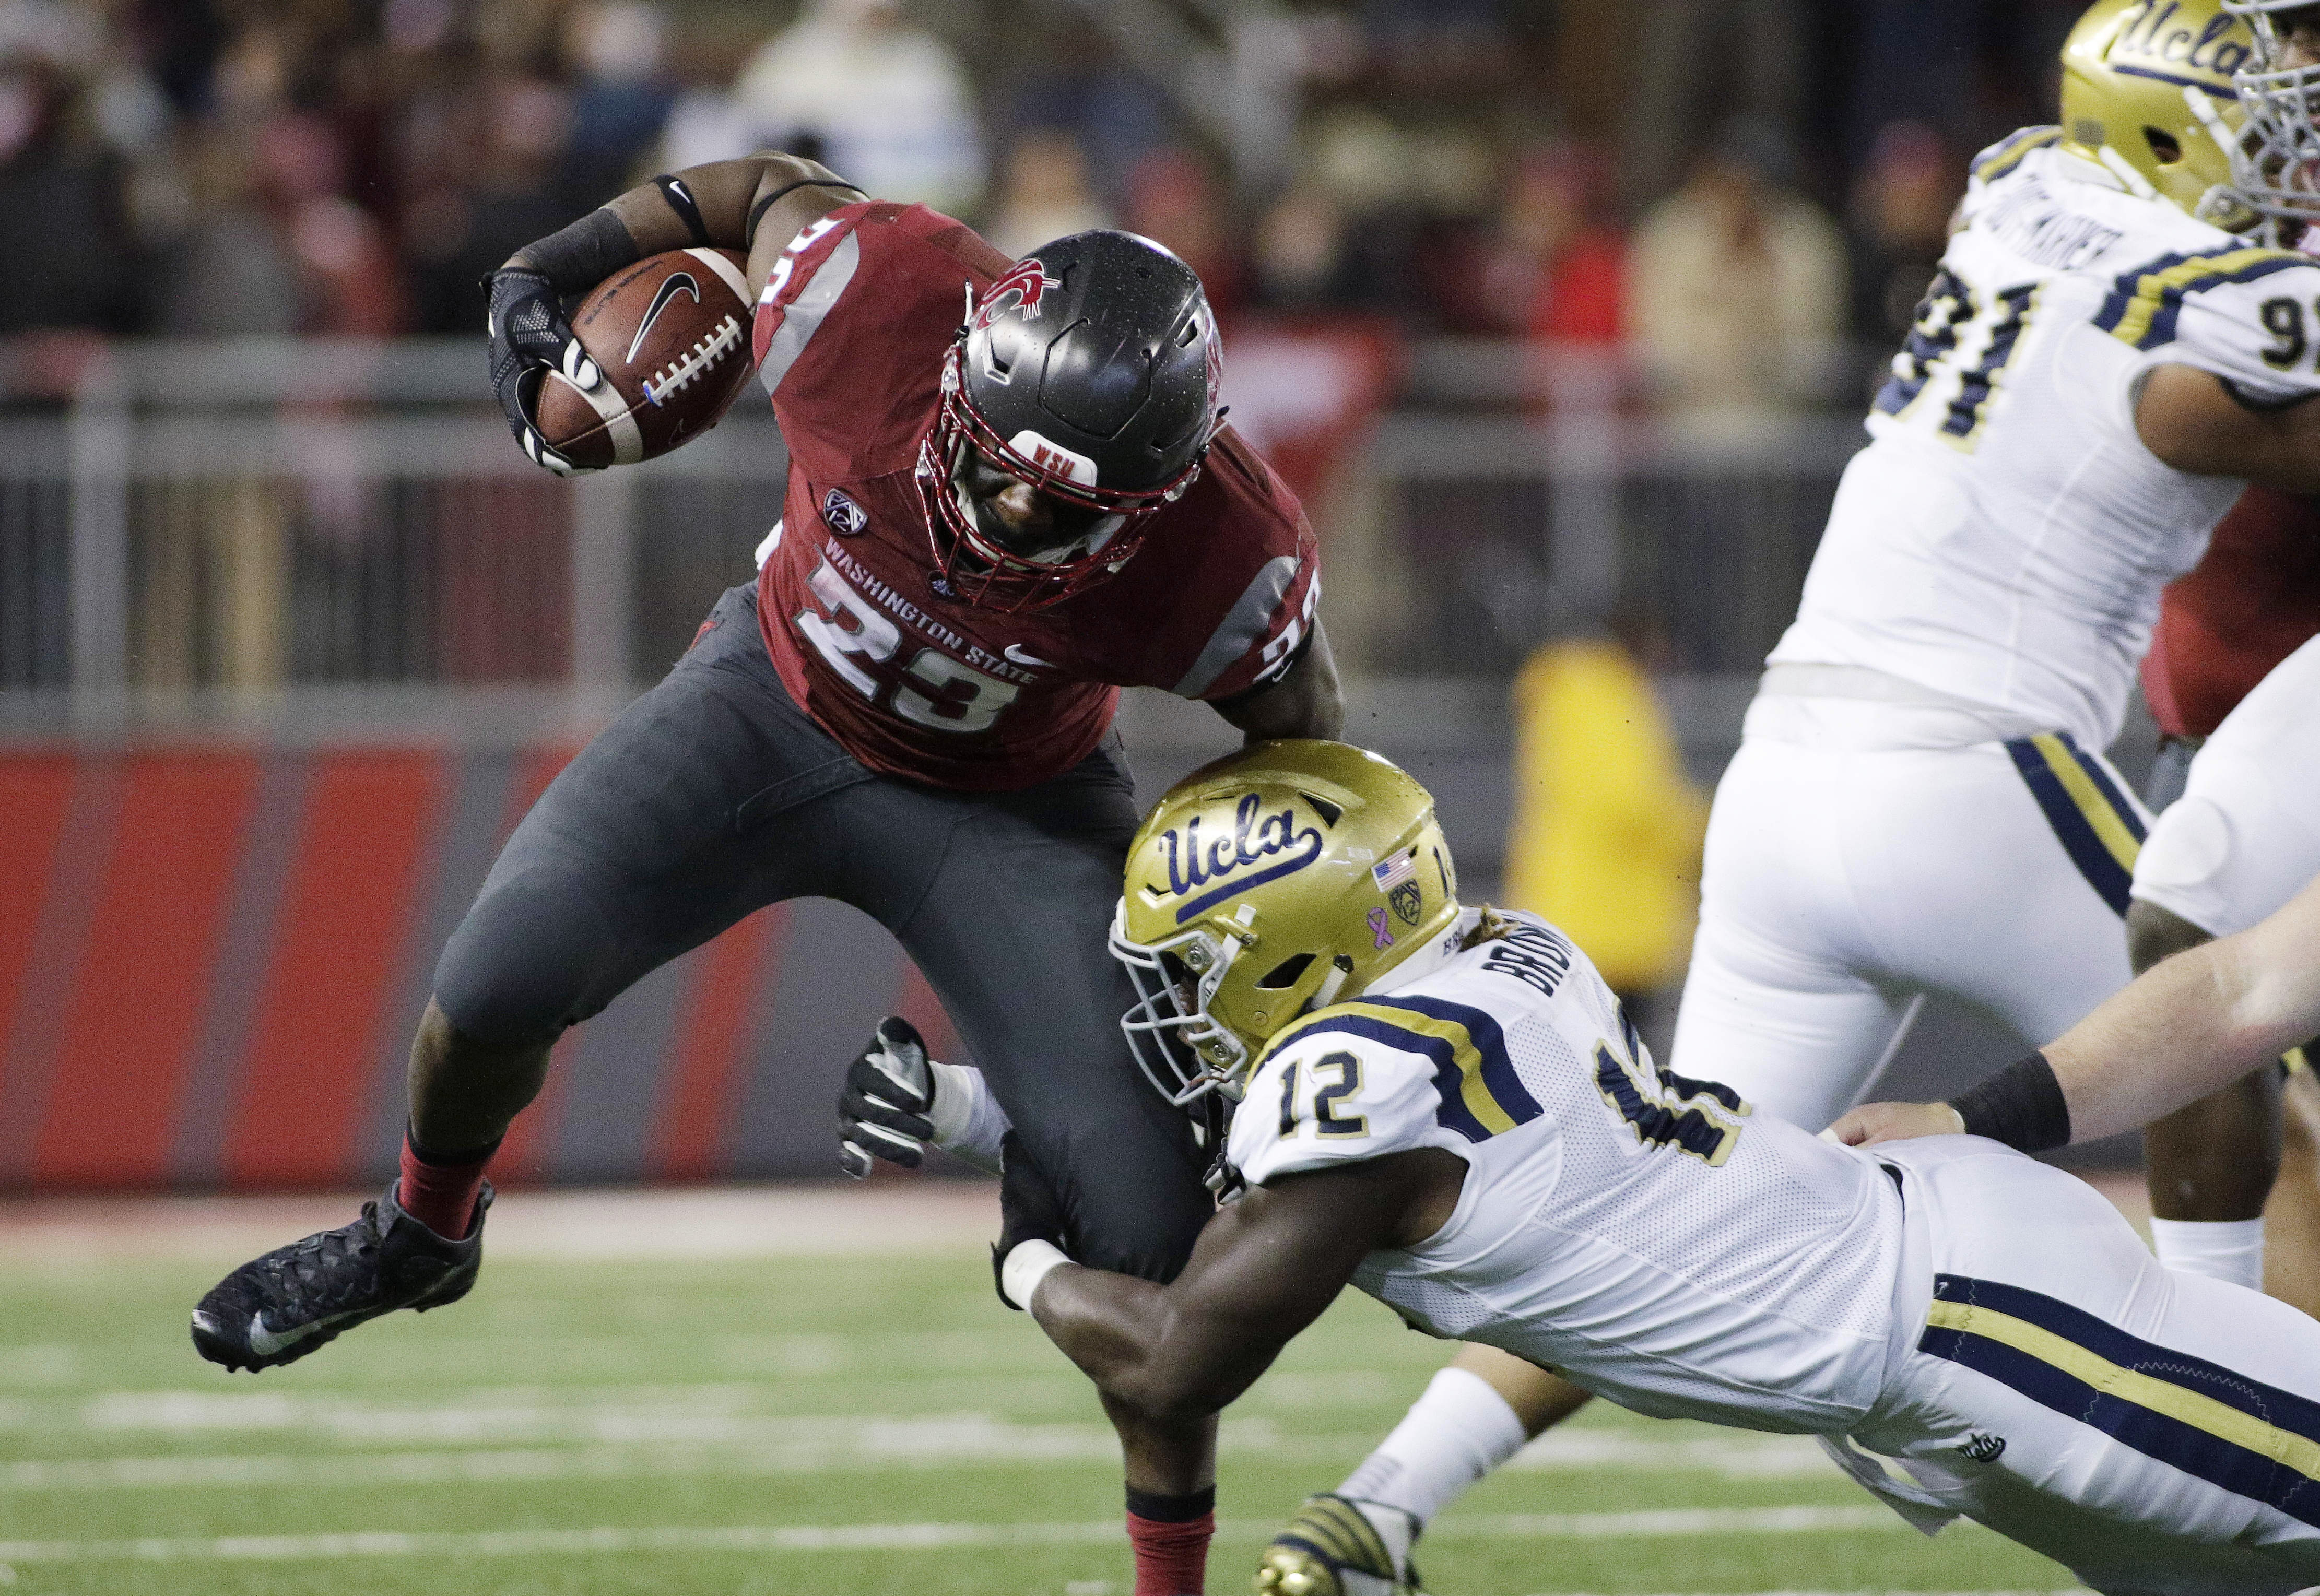 UCLA linebacker Jayon Brown (12) brings down Washington State running back Gerard Wicks (23) during the second half of an NCAA college football game in Pullman, Wash., Saturday, Oct. 15, 2016. Washington State won 27-21. (AP Photo/Young Kwak)